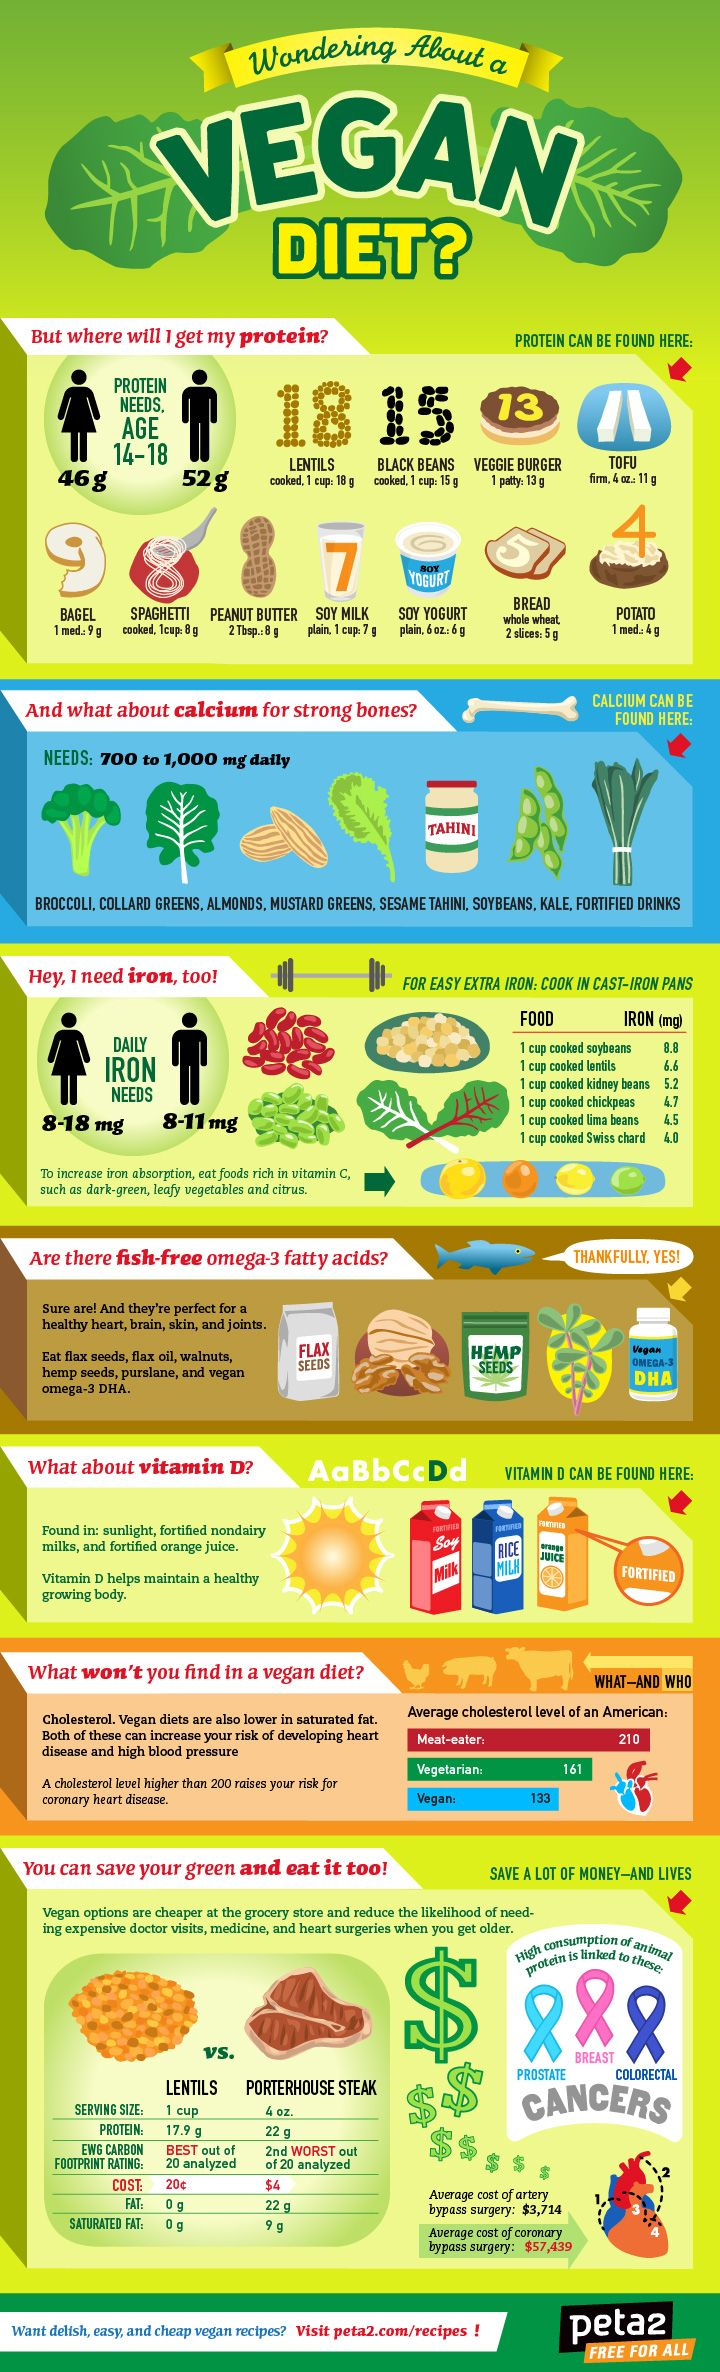 "peta2 ""Wondering About A Vegan Diet?"" inforgraphic"